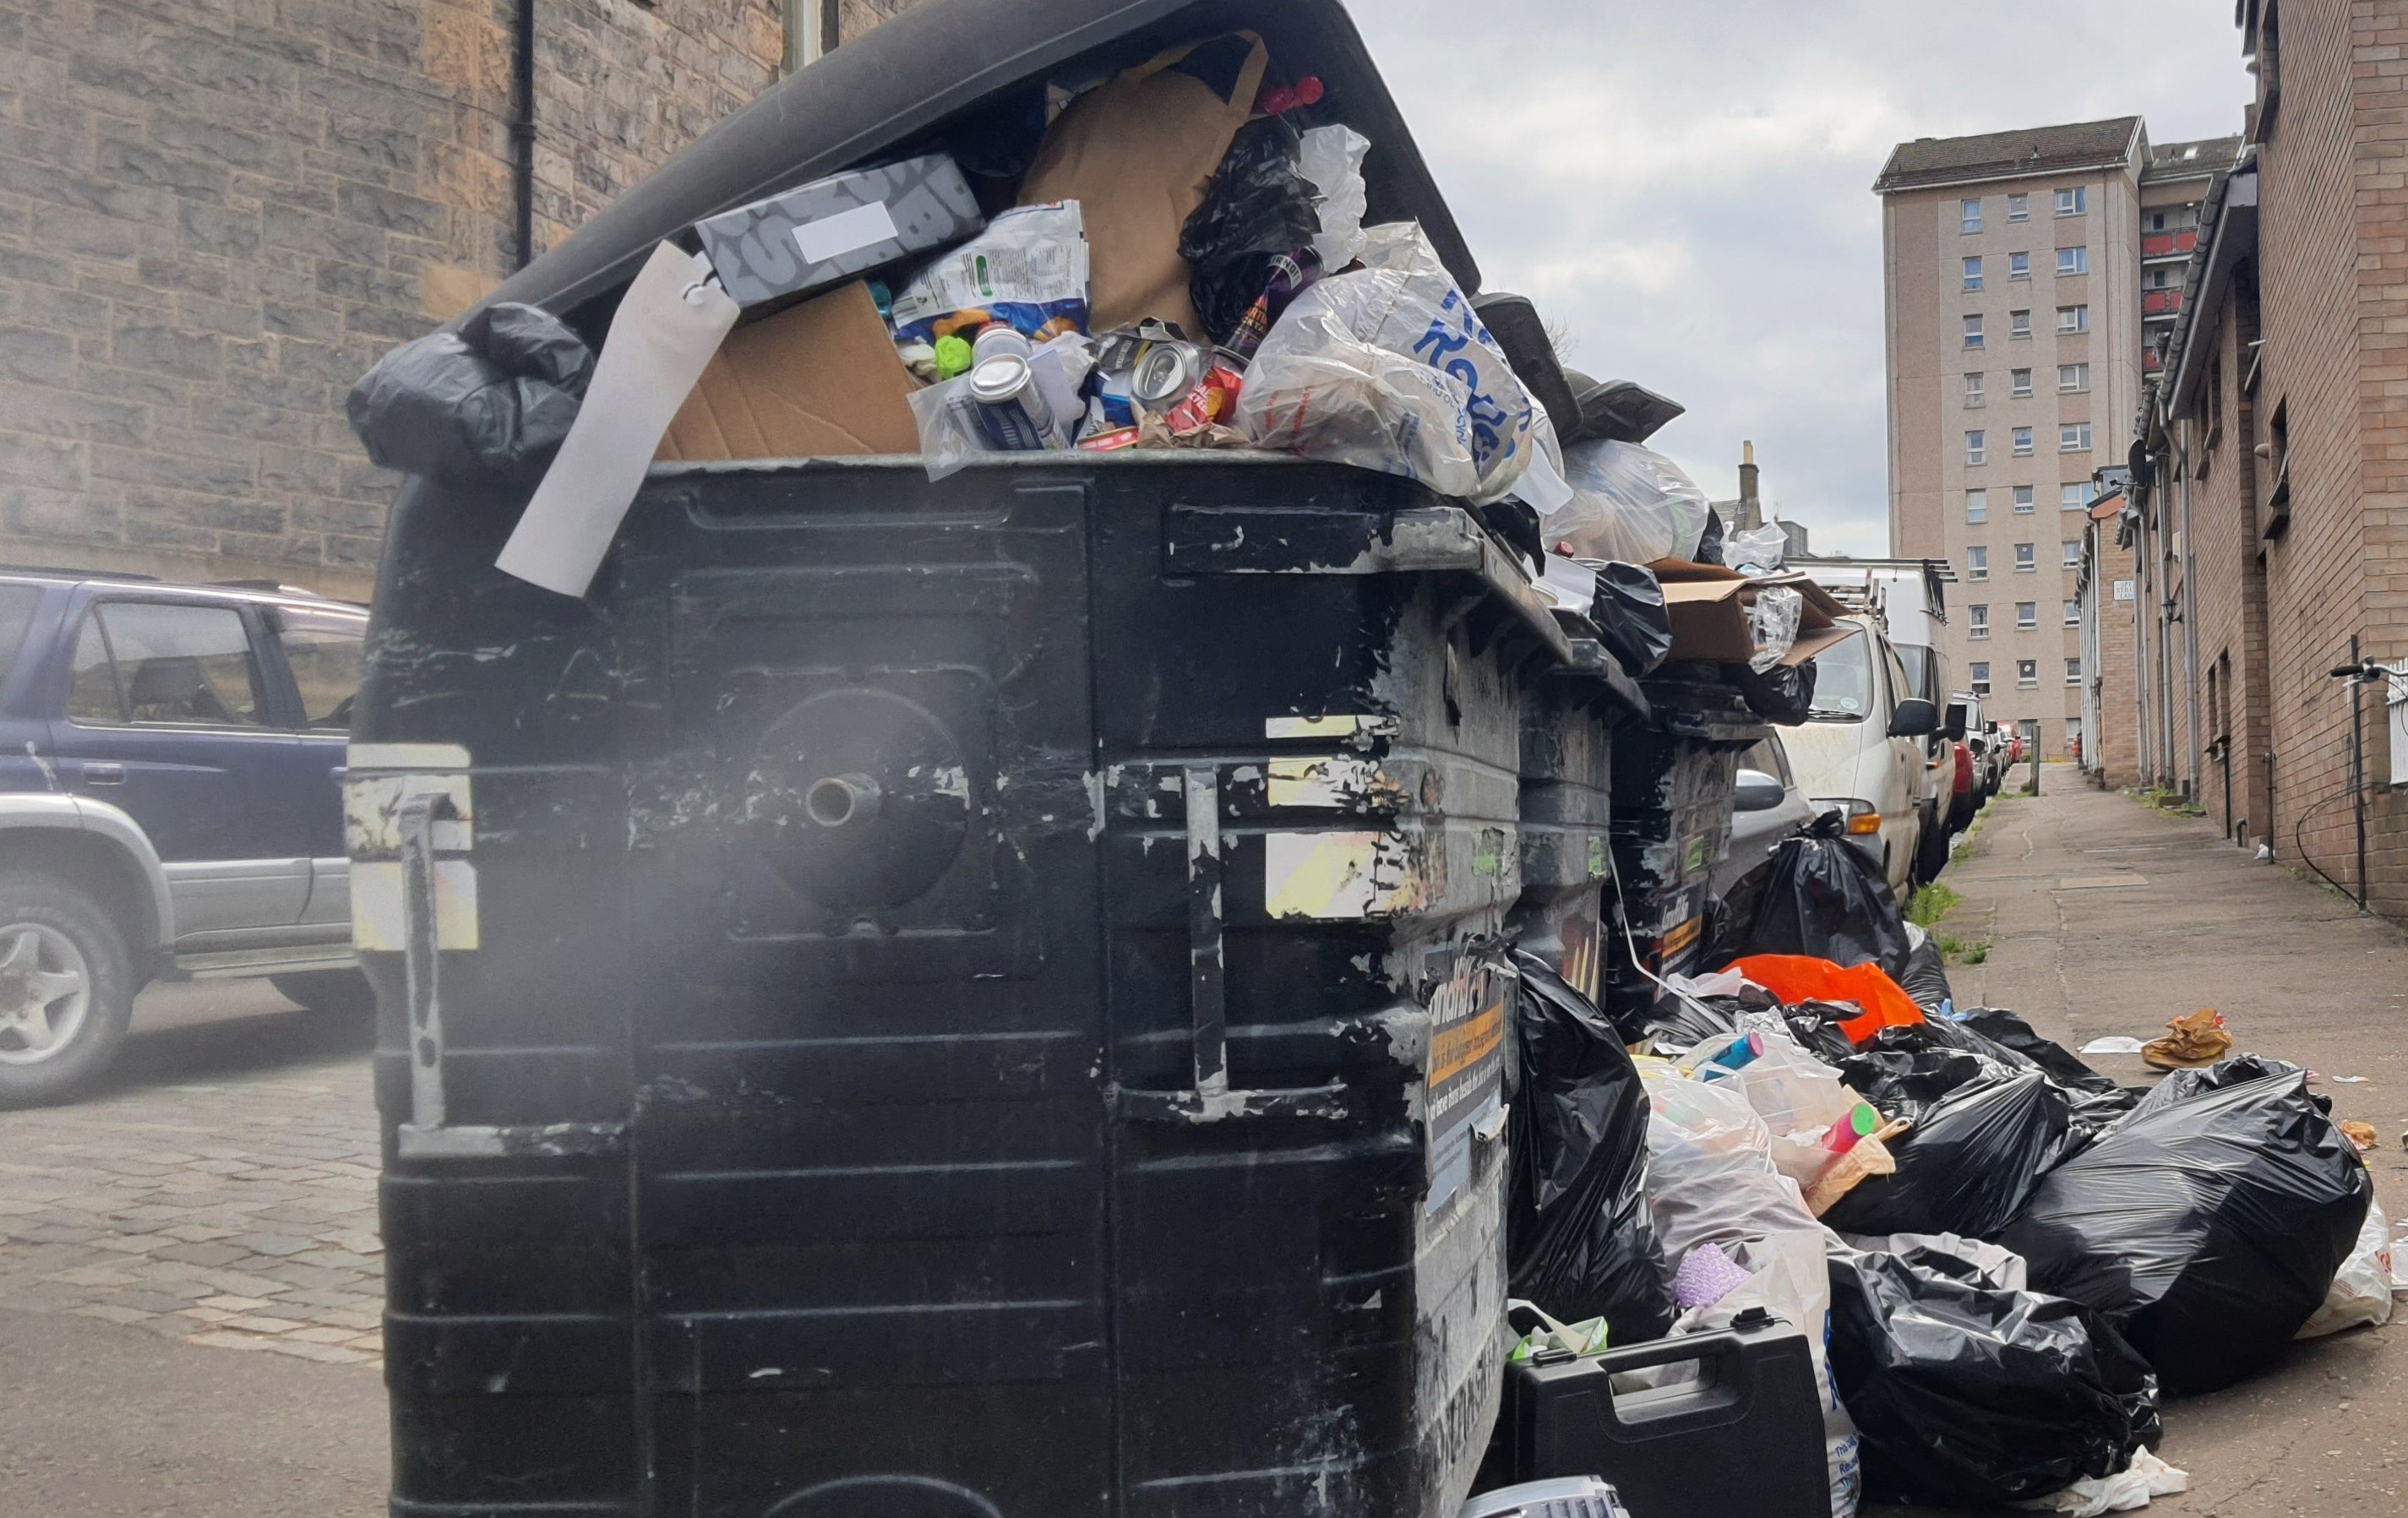 New figures show Edinburgh streets 'dirty and getting dirtier'